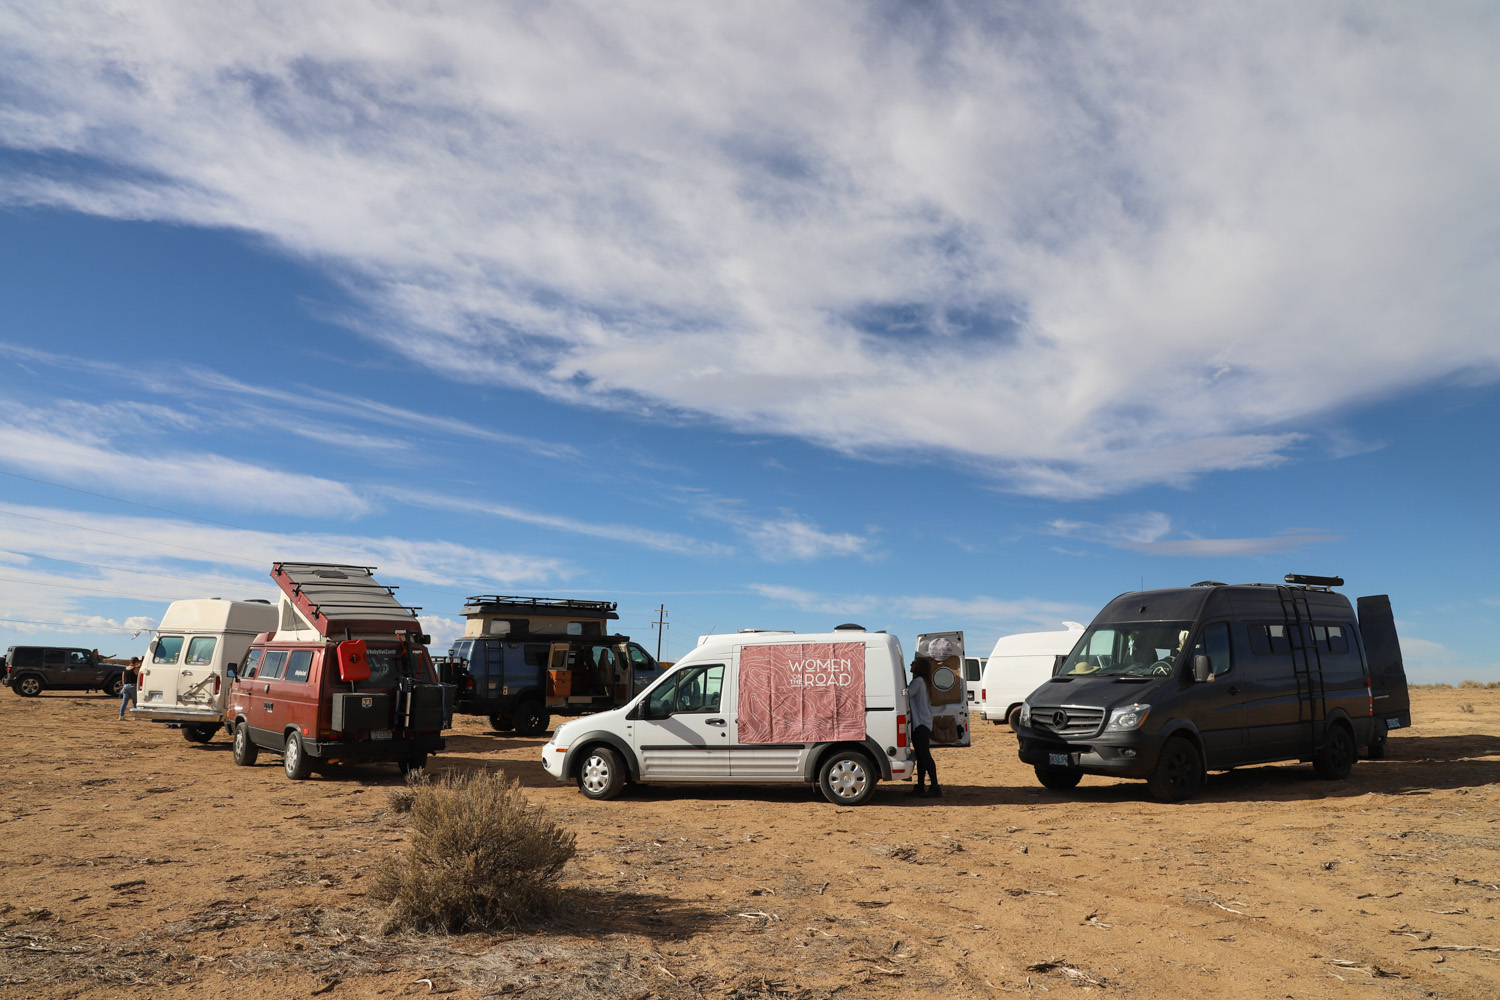 Some of the many vans that gathered in Taos — photo by Hailey Hirst